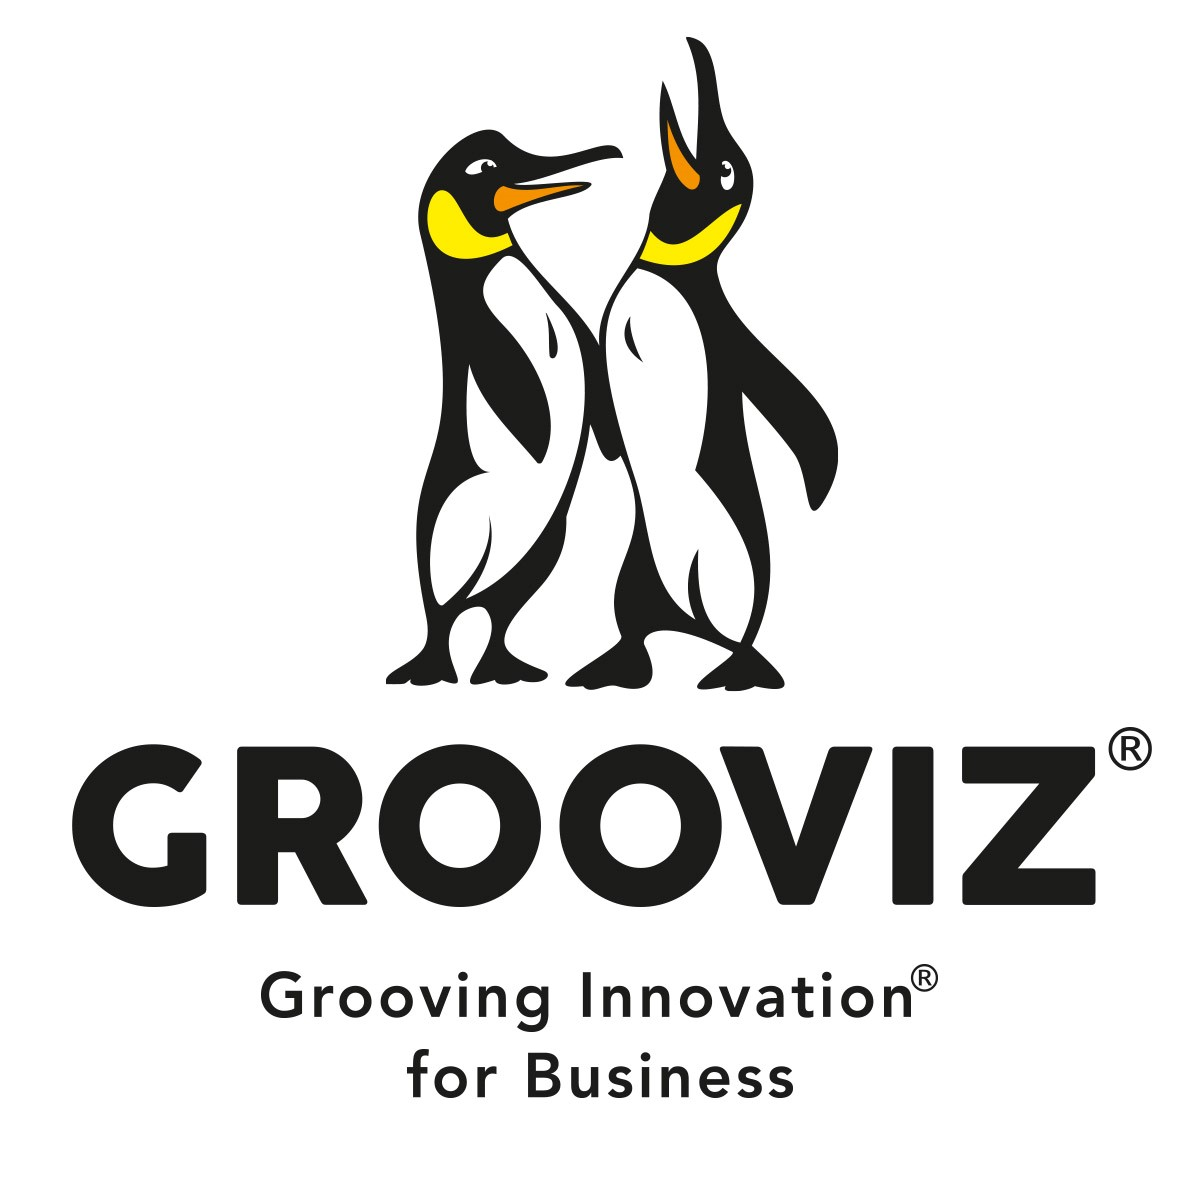 GROOVIZ®grooving-innovation® for business